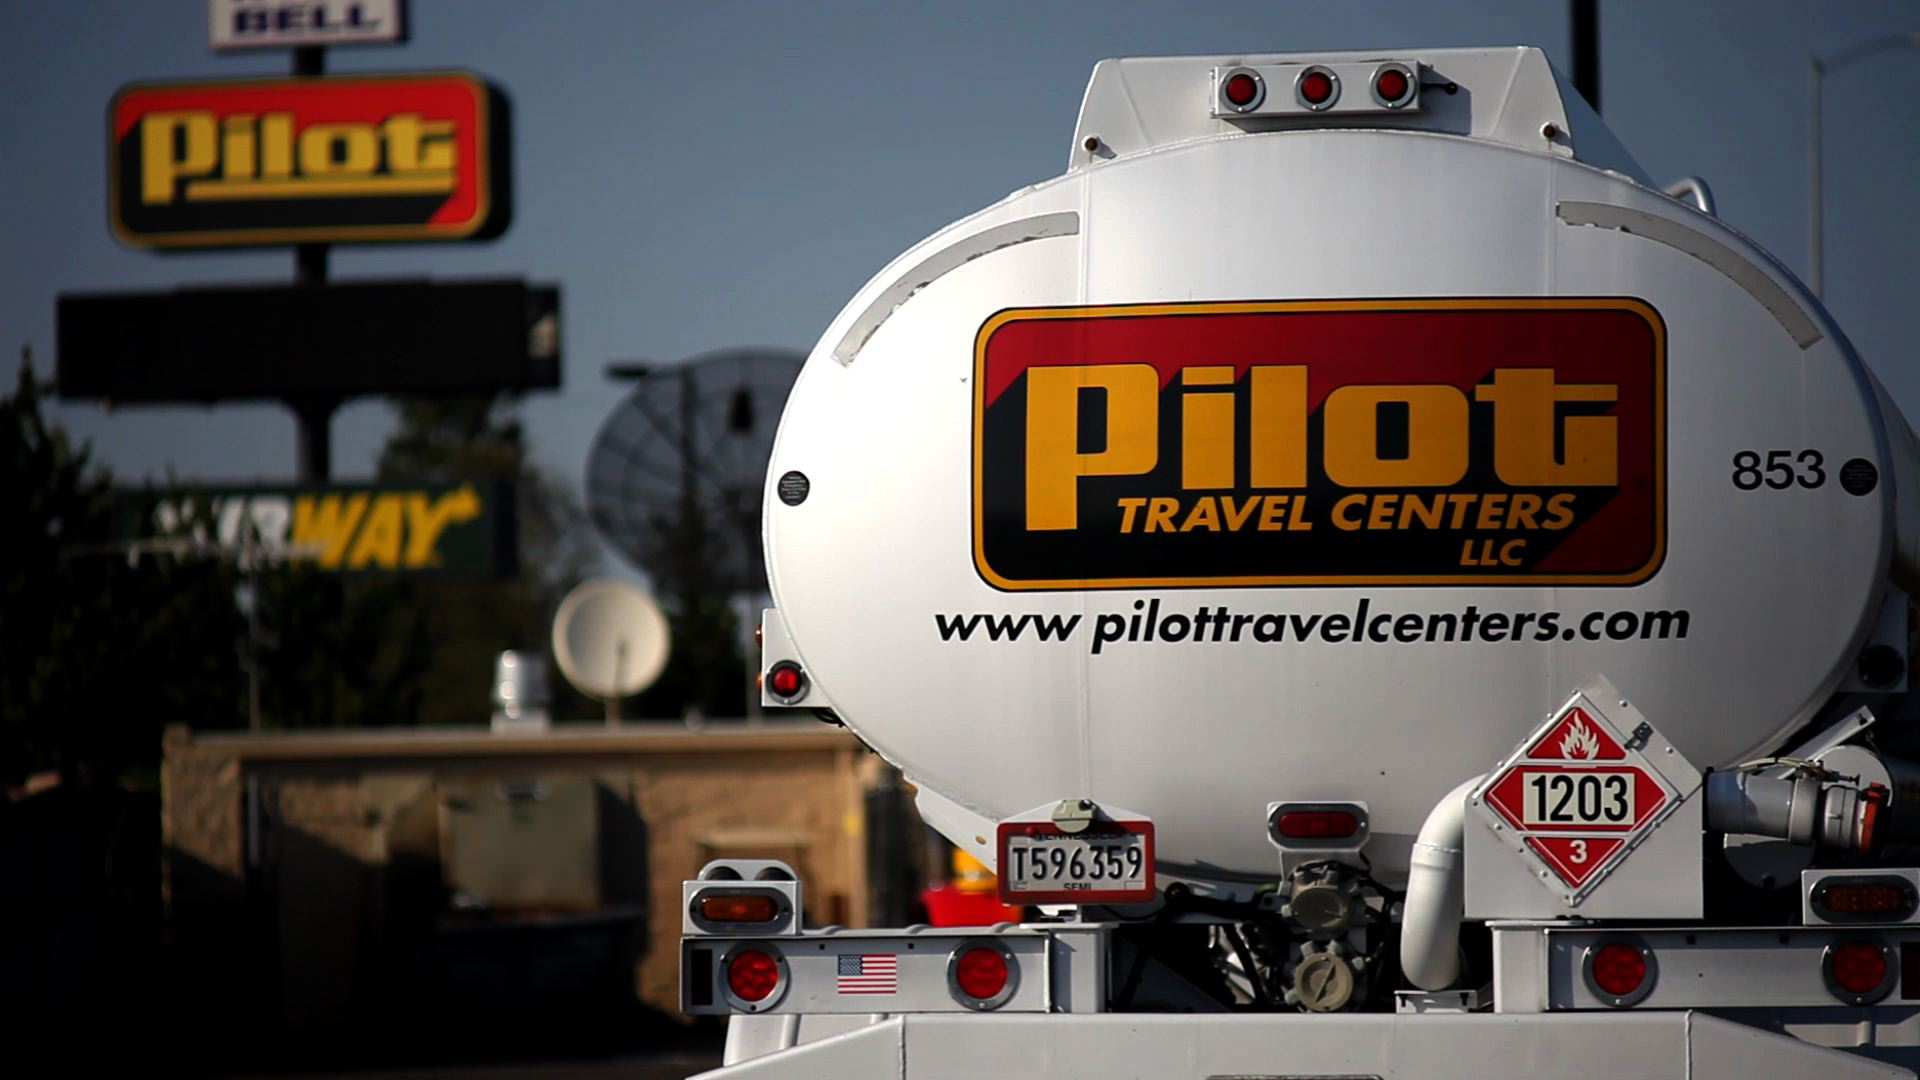 Court to Rule in July on Motion to Consolidate Pilot Flying J Lawsuits